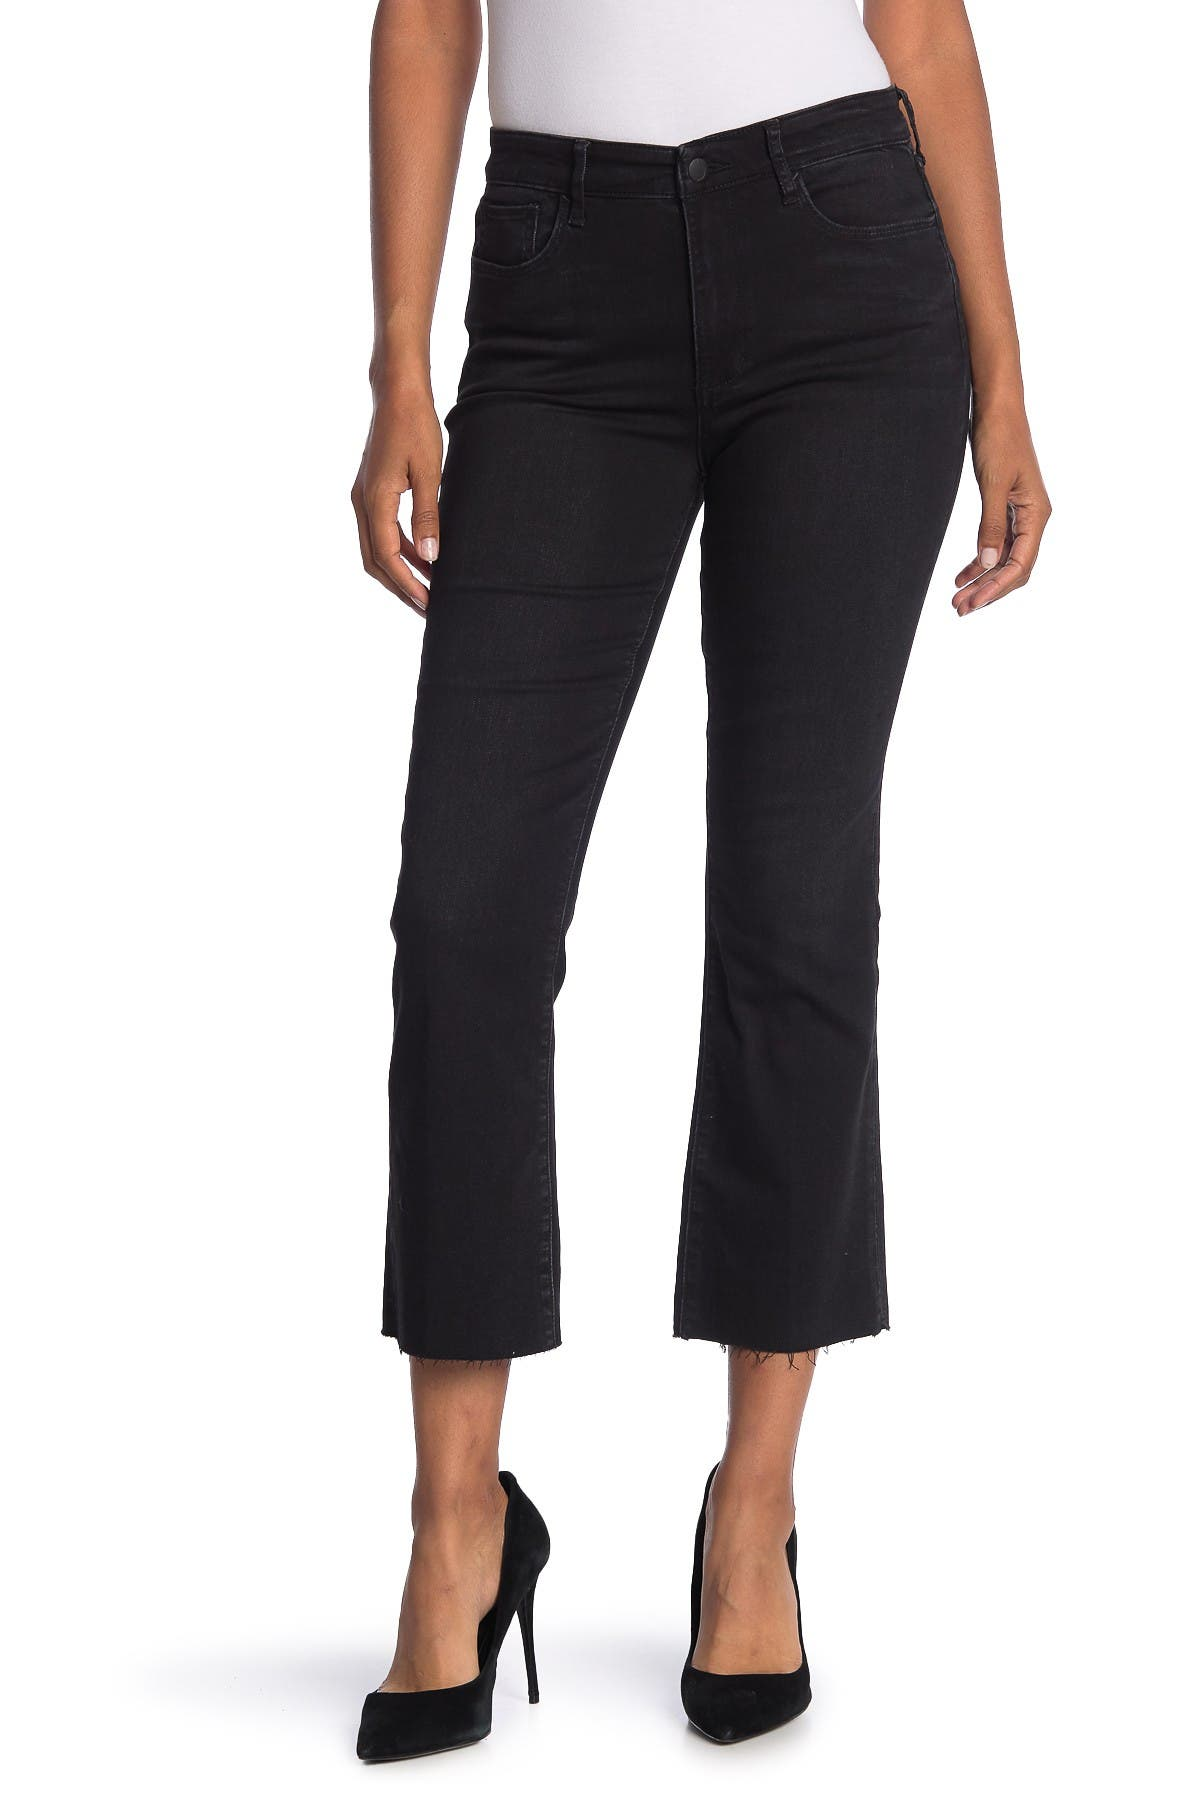 Image of Joe's Jeans High Rise Straight Crop Jeans